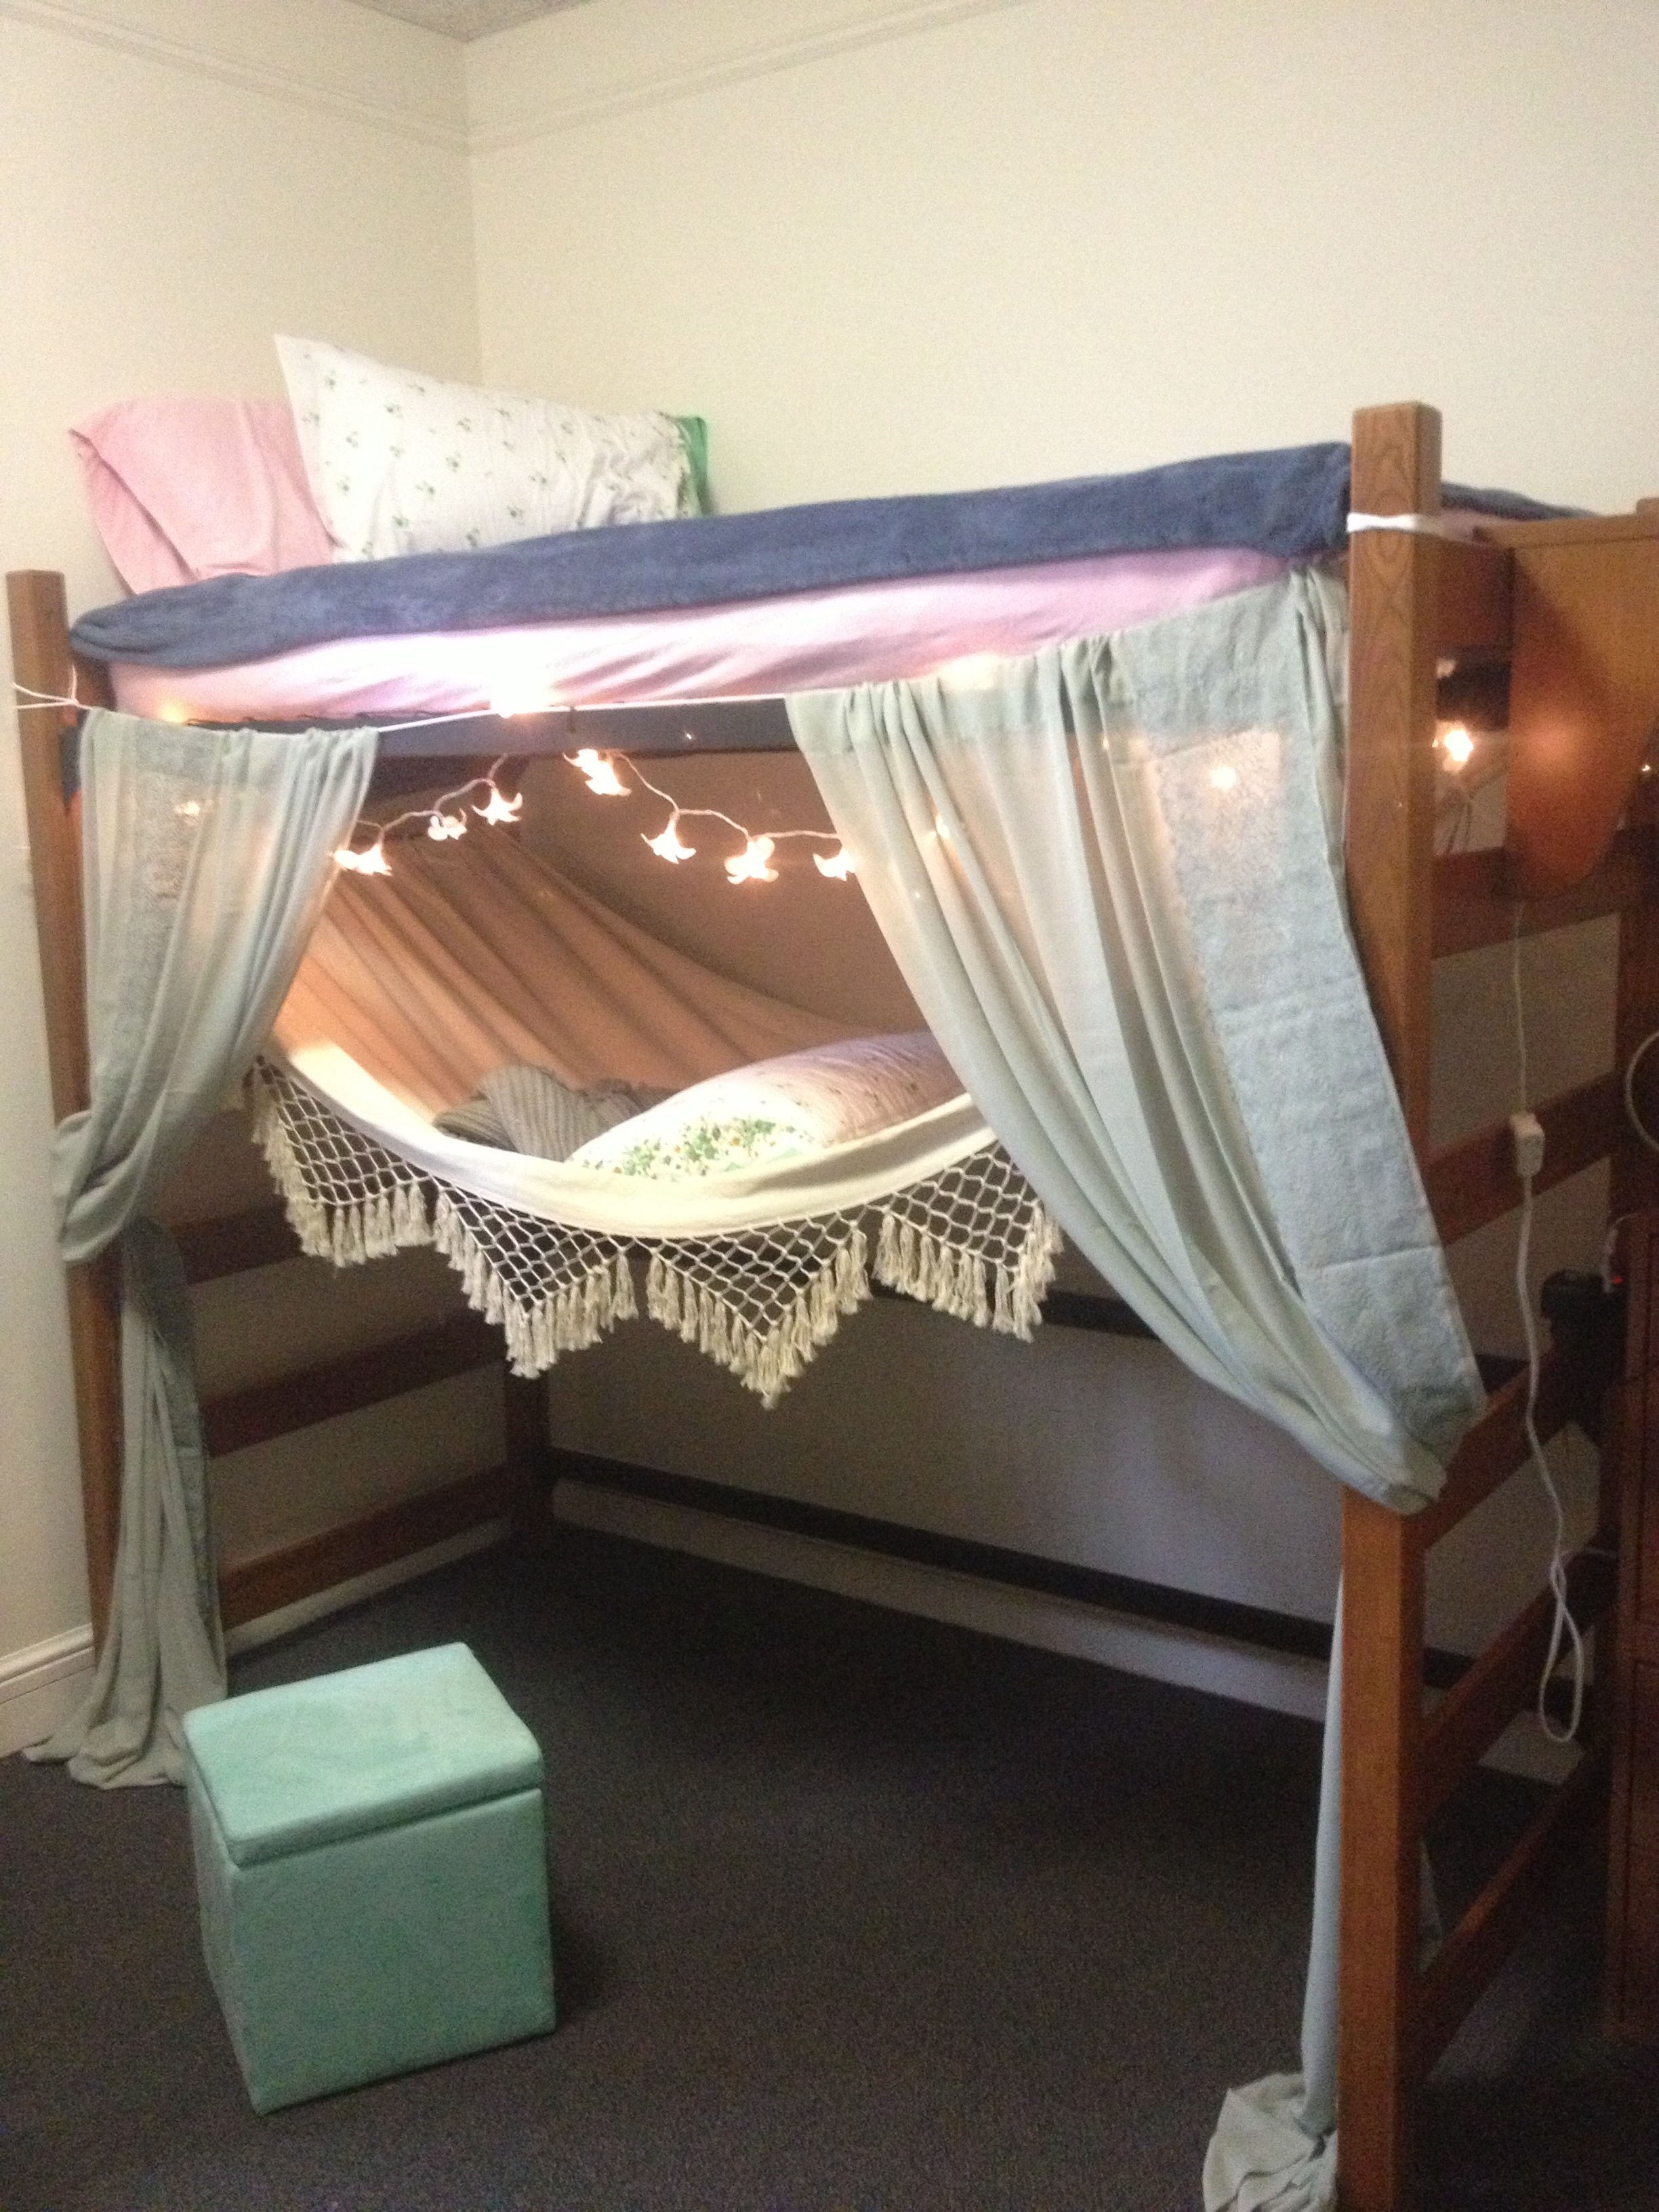 15 Diy Dorm Room Ideas To Save Money And Make Your Place